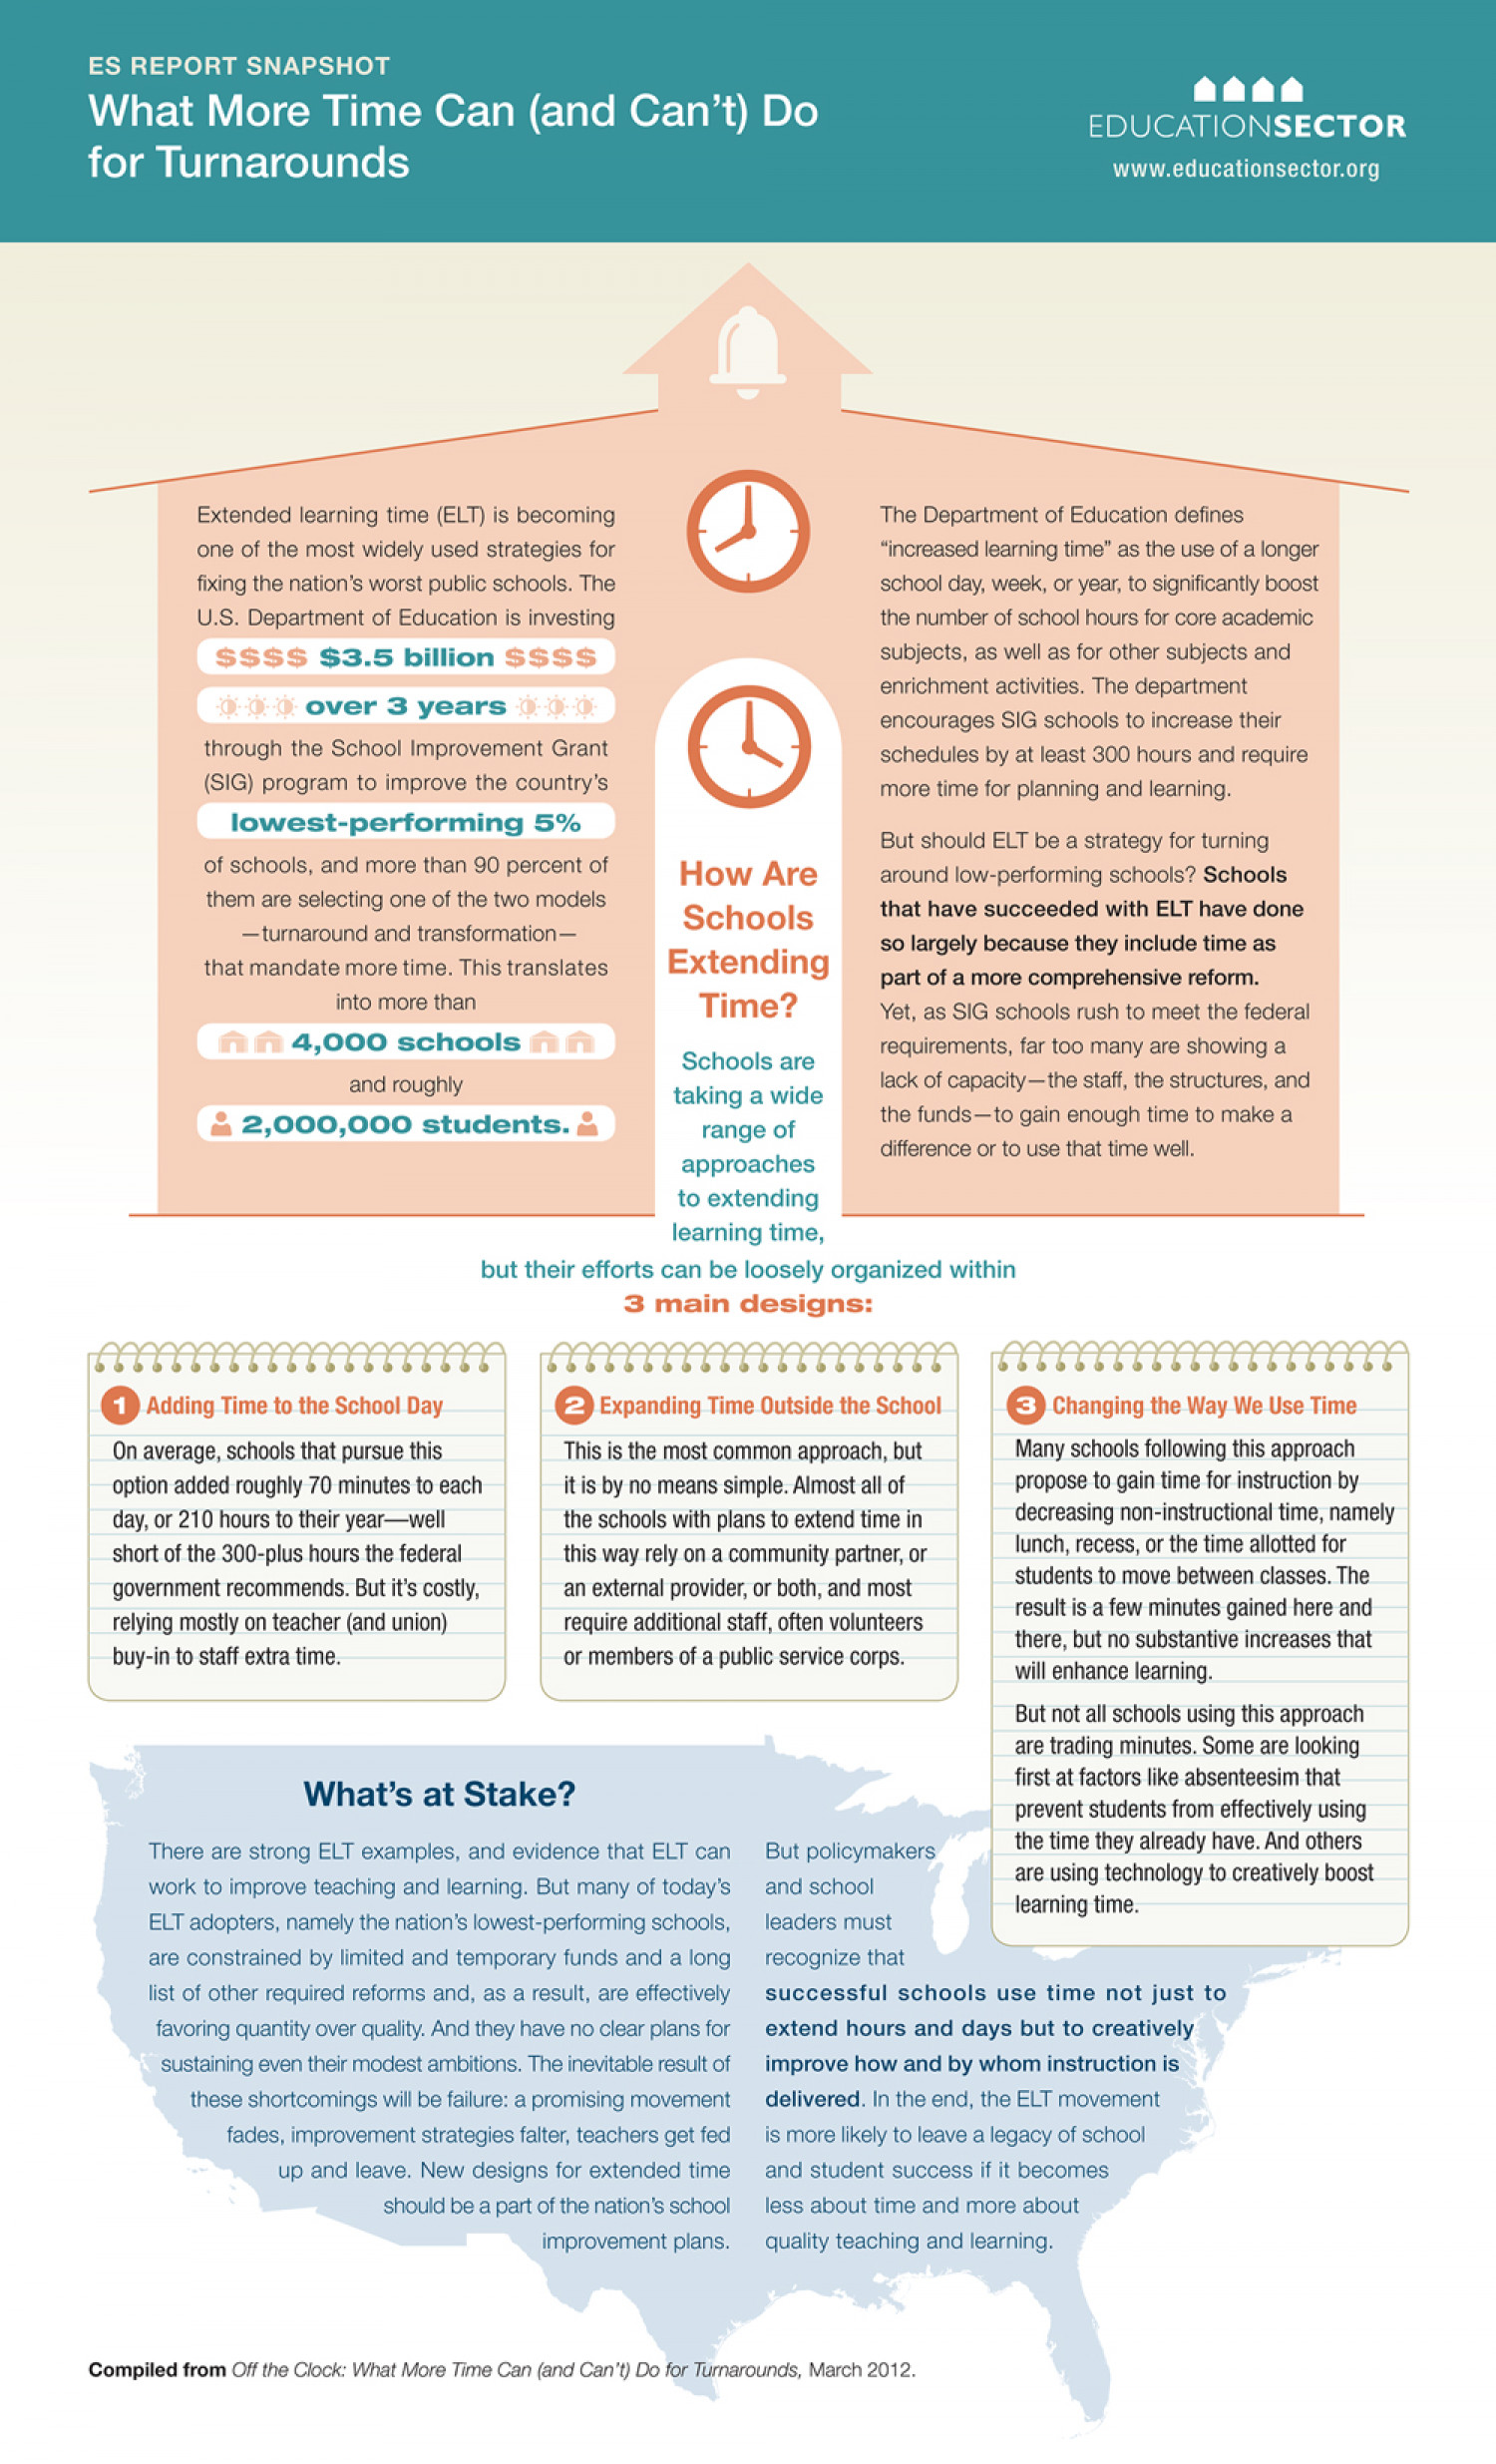 What More Time Can (and Can't) Do for School Turnarounds Infographic